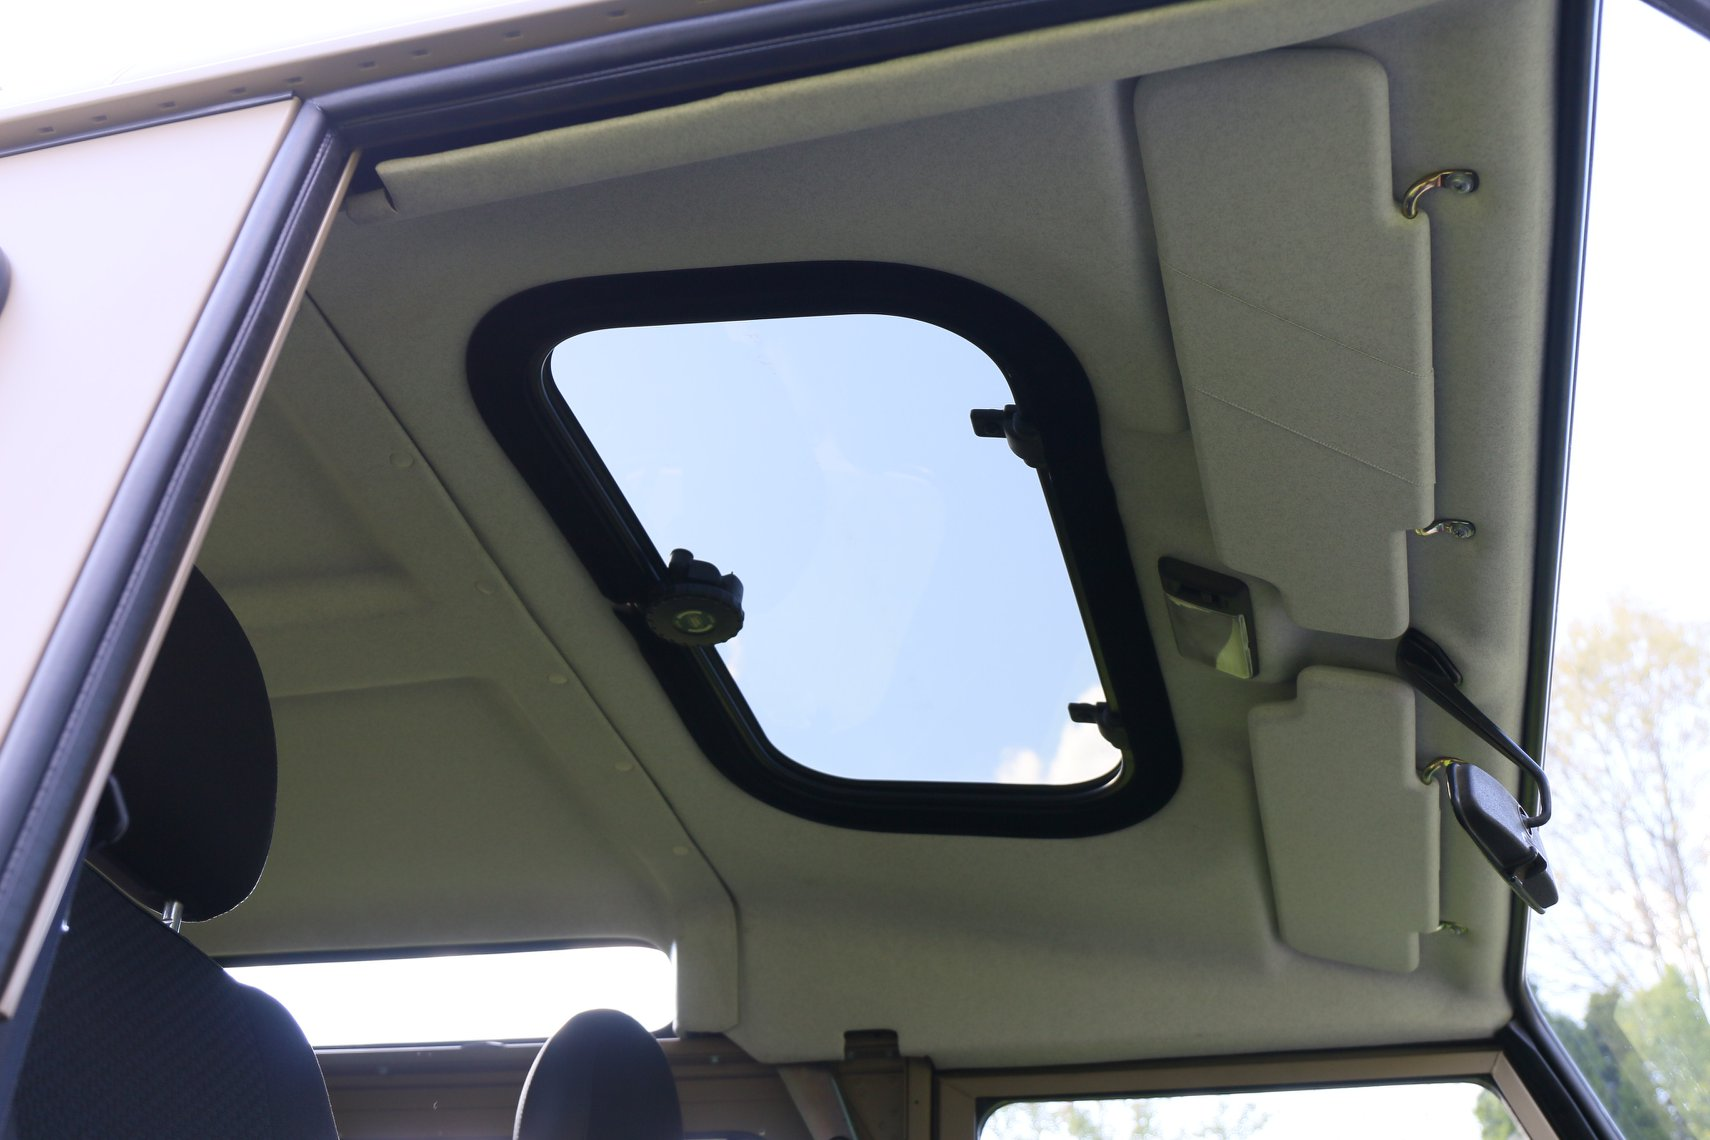 New headliner and sunroof on 1985 Land Rover Defender.